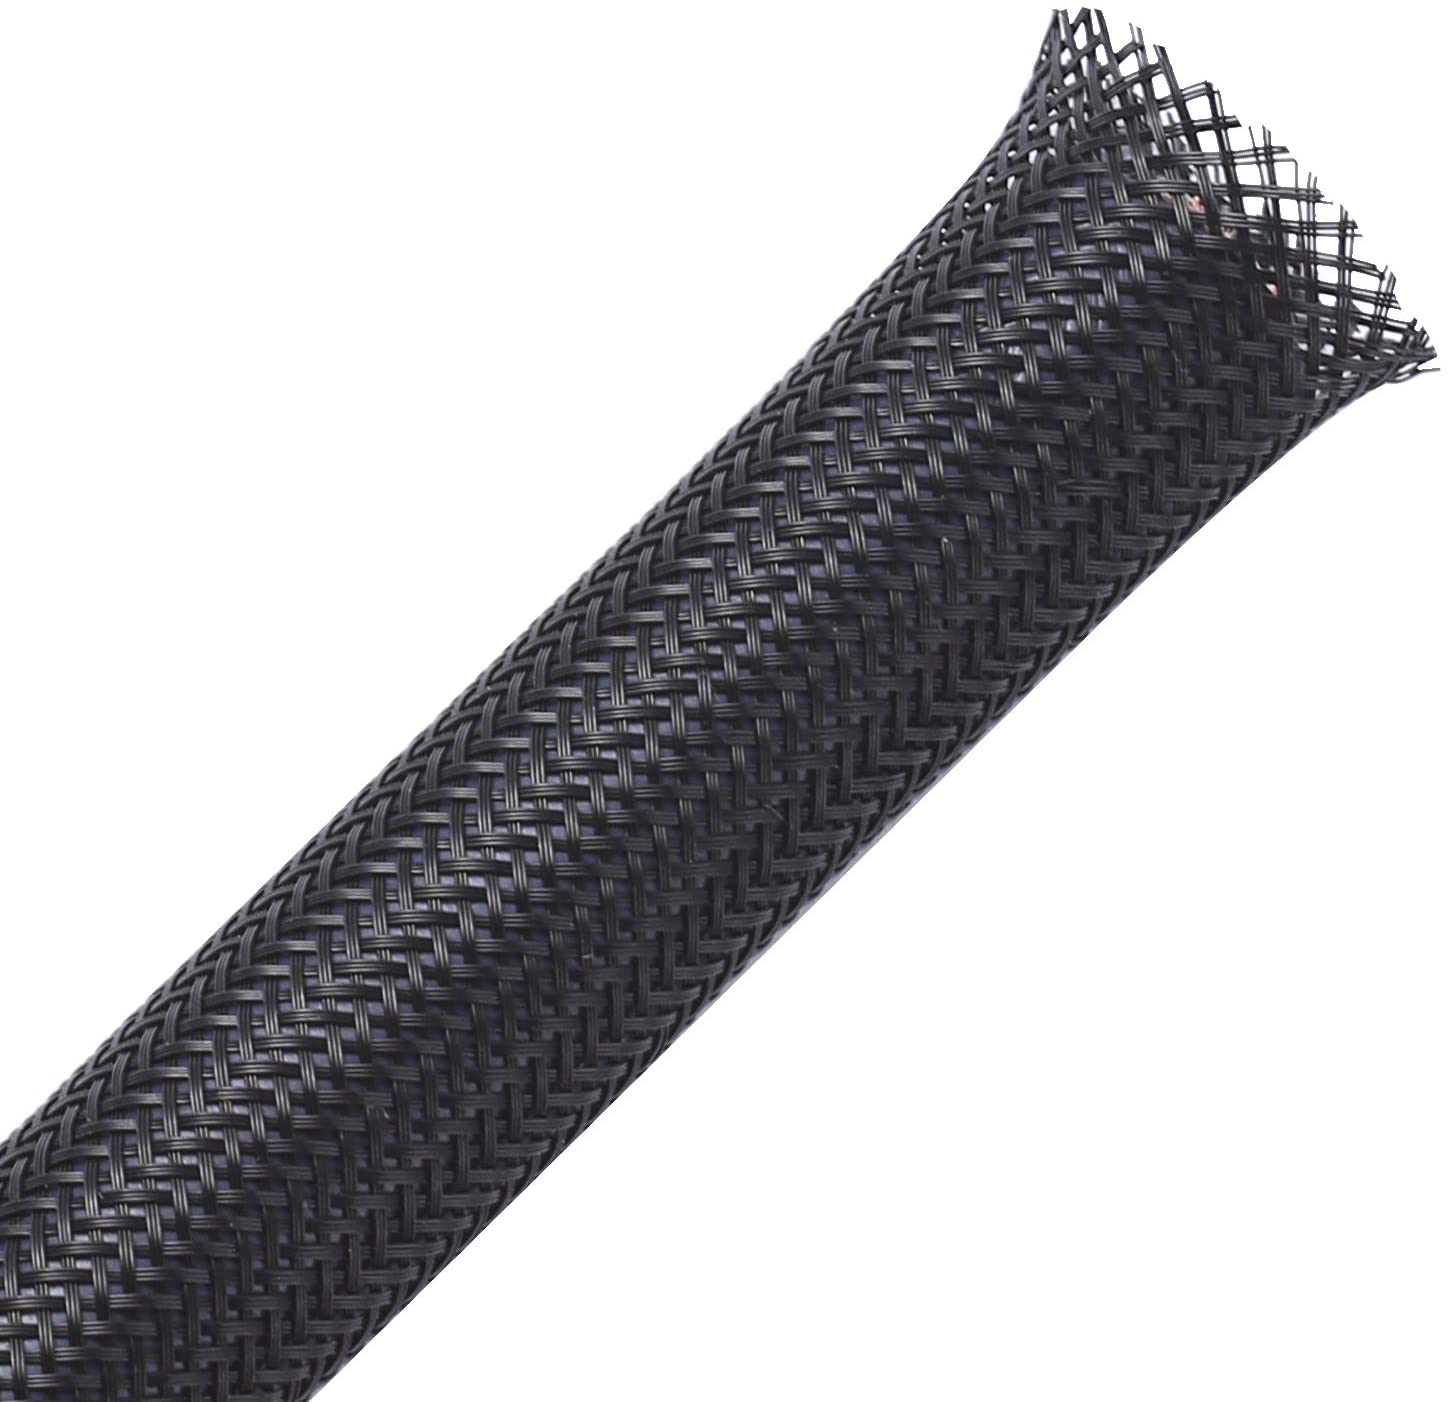 100ft - 1/4 inch PET Expandable Braided Sleeving – Black – Alex Tech braided cable sleeve: Home Improvement